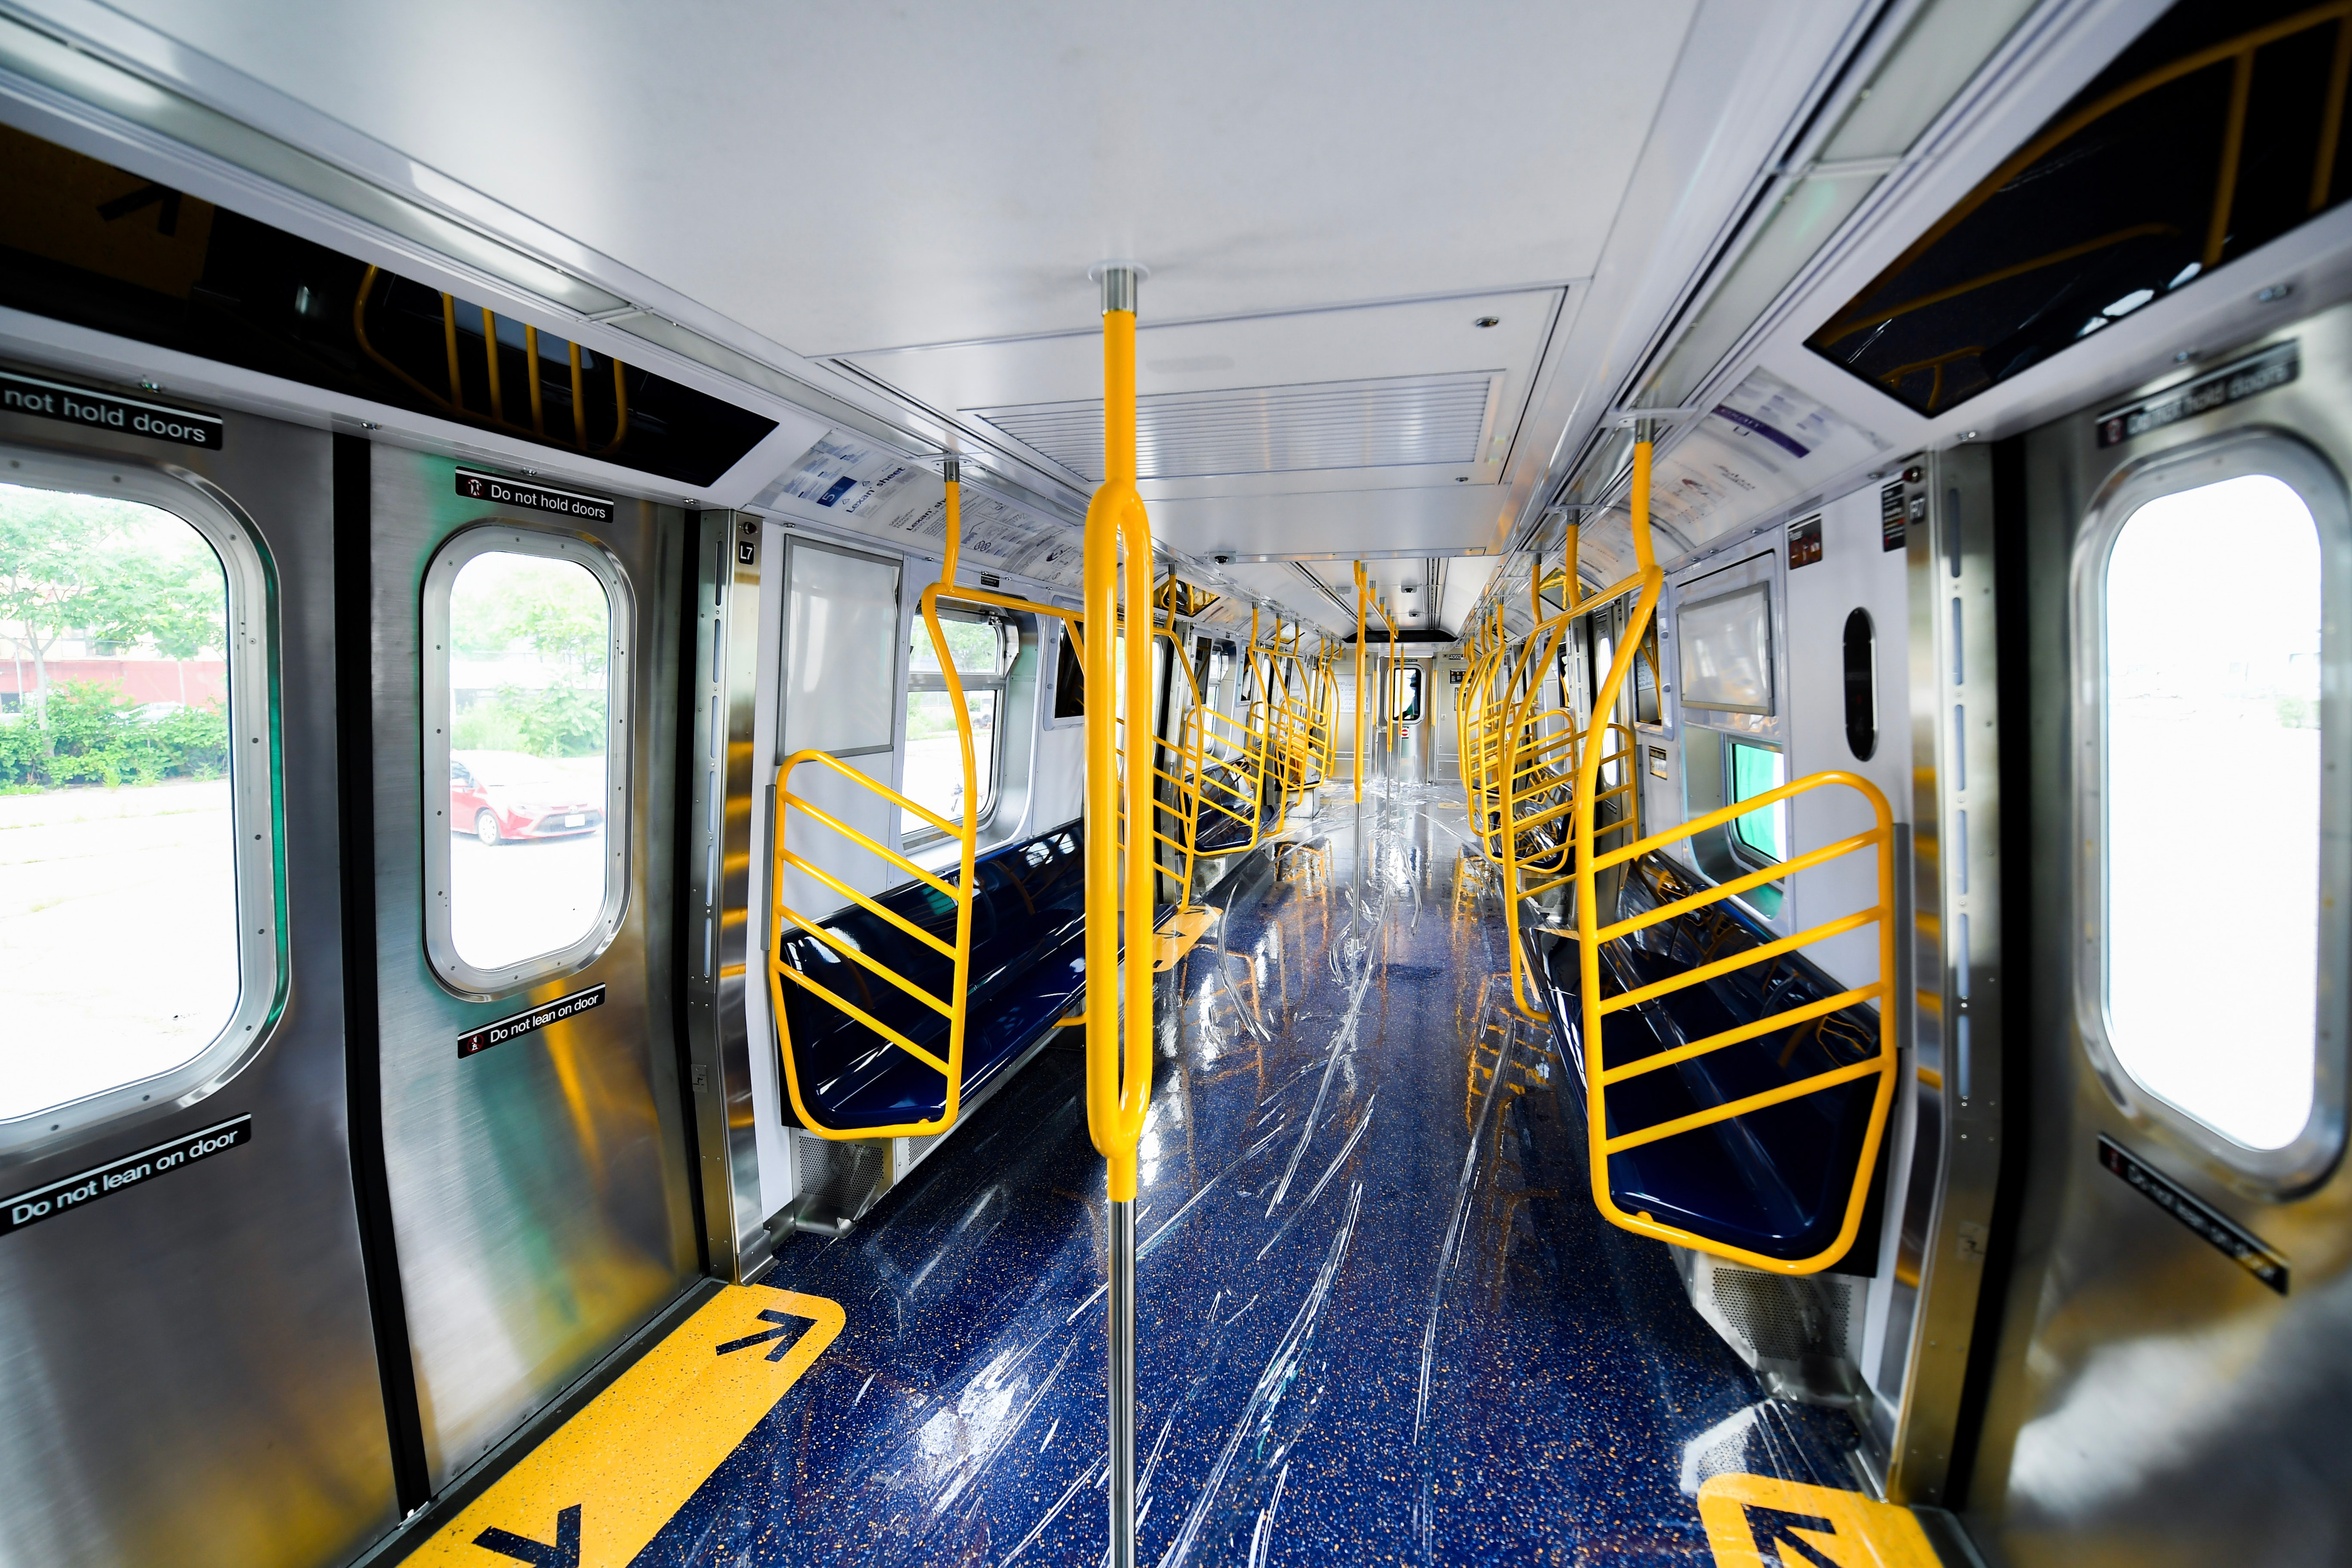 Mta Announces First Of New R211 Subway Cars Arrive For Testing Mta